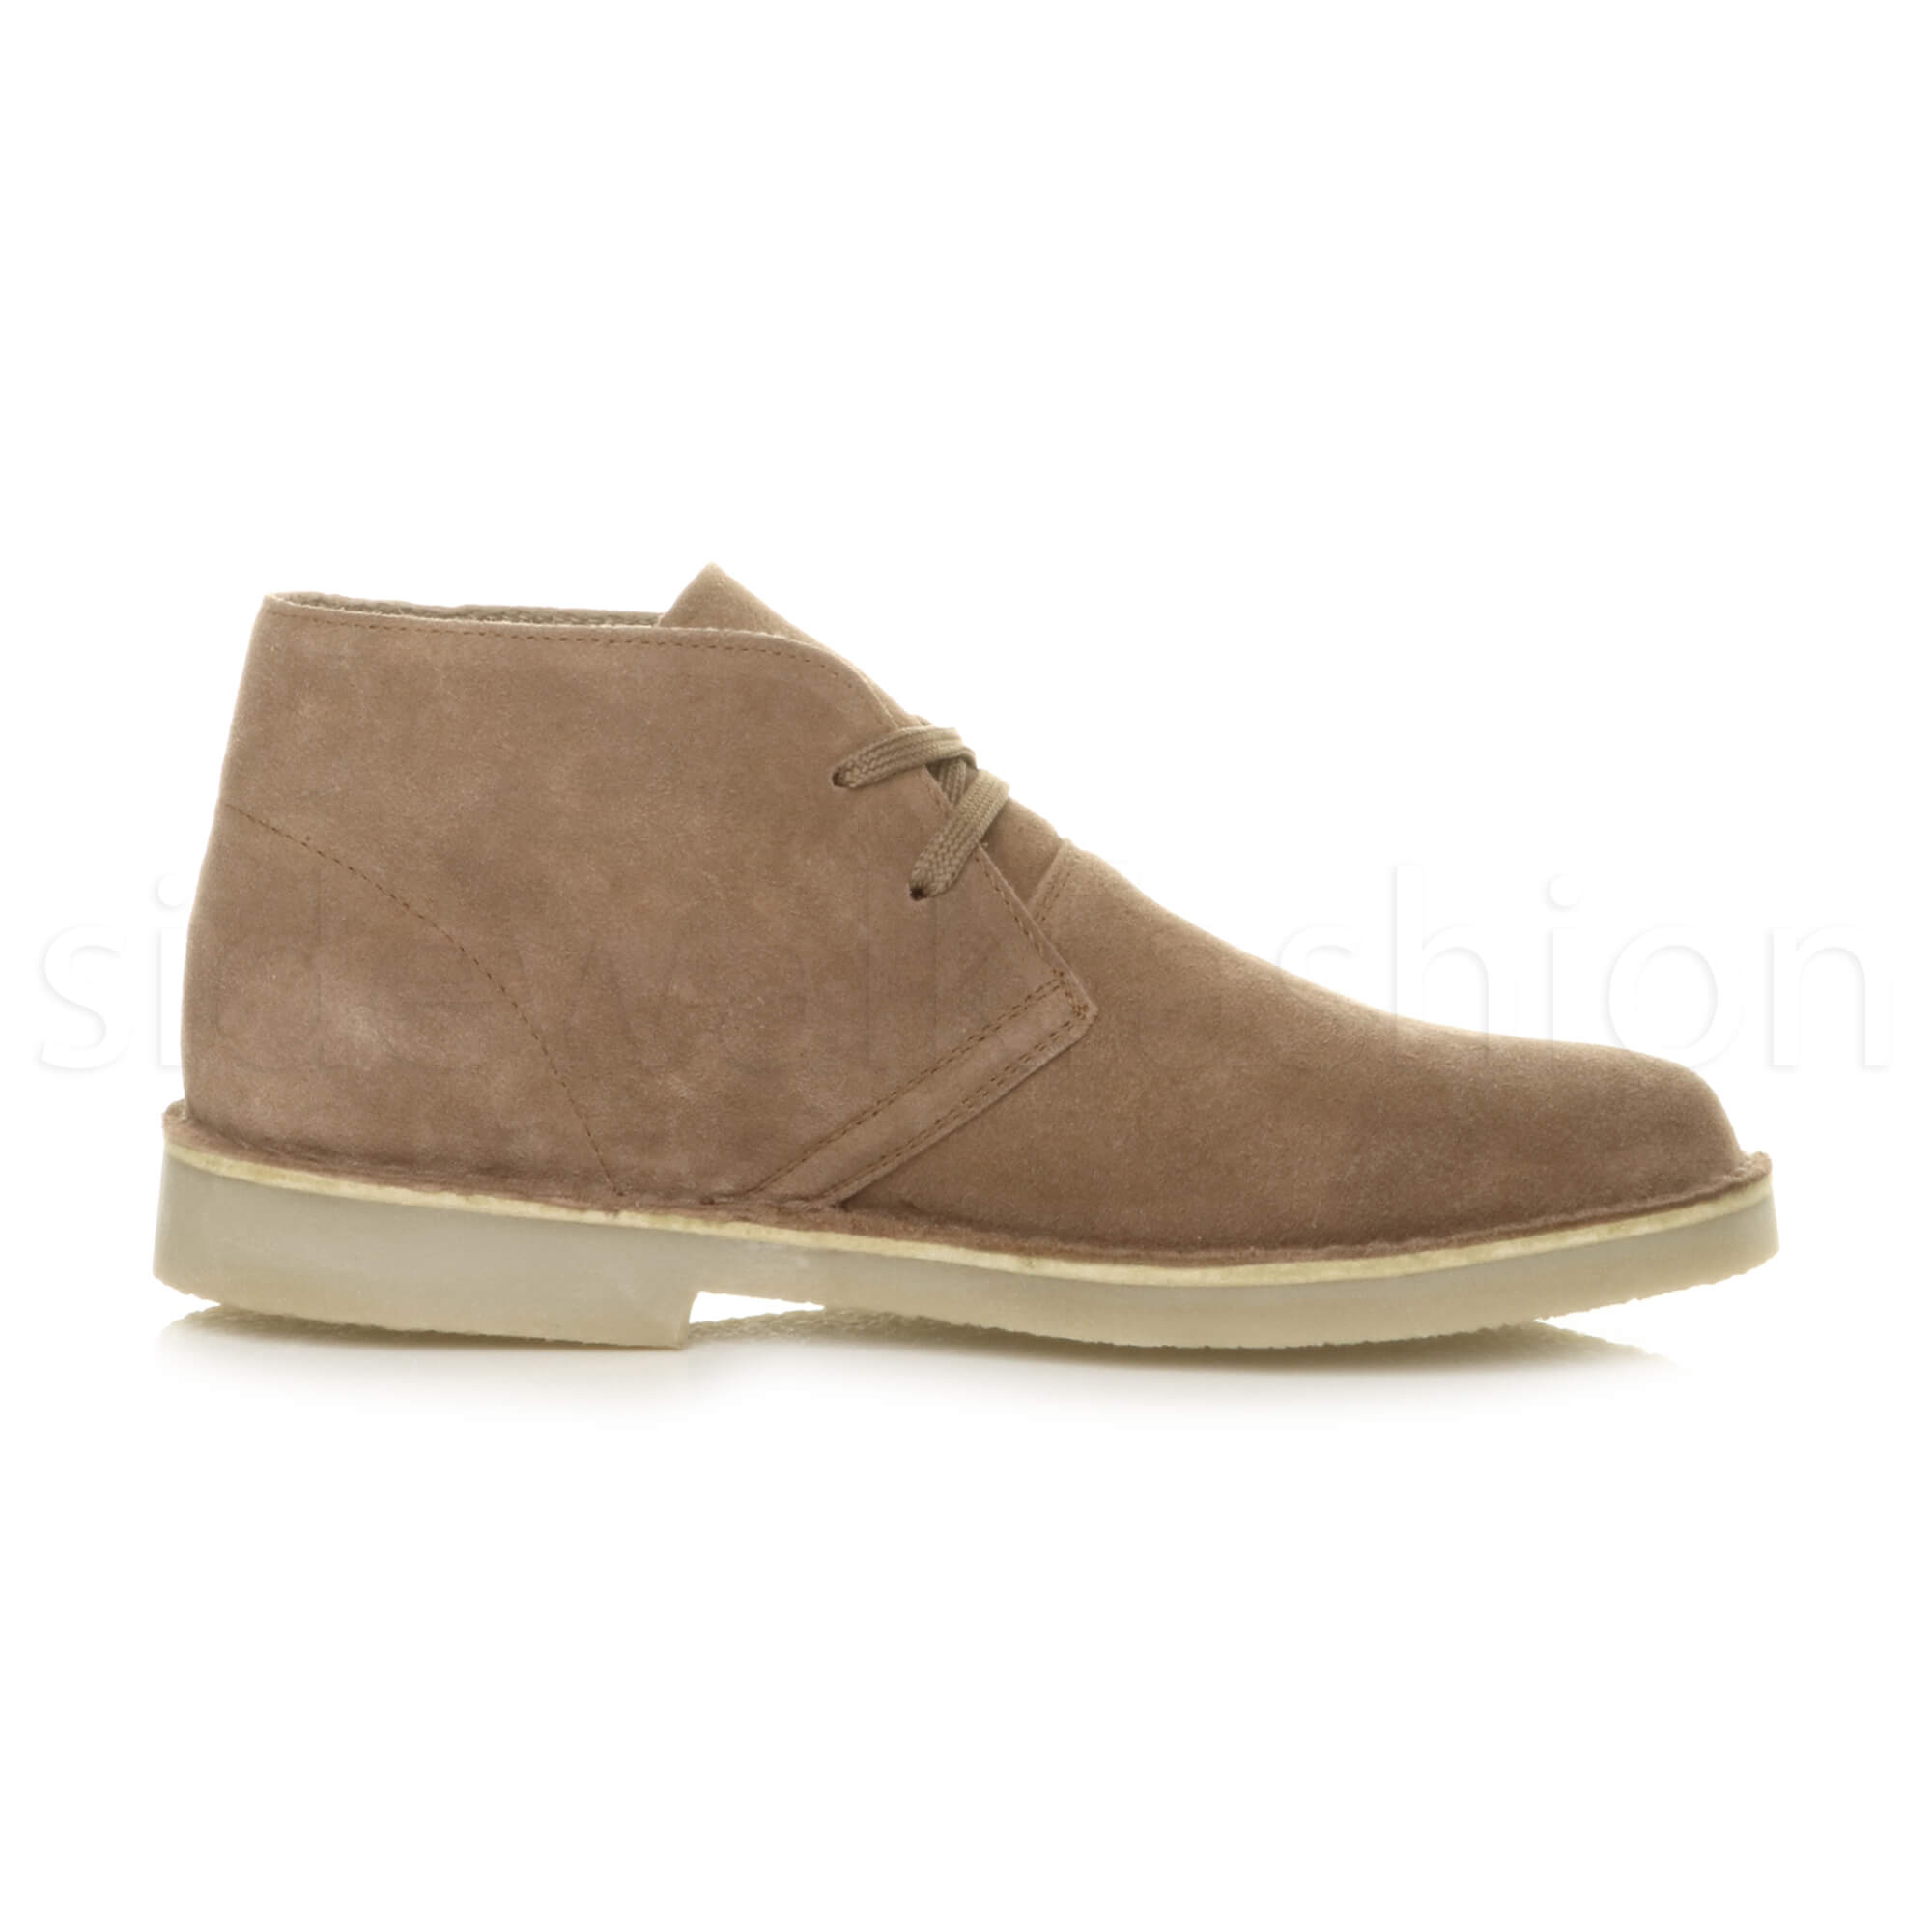 Mens-lace-up-rubber-sole-suede-ankle-chukka-desert-boots-classic-shoes-size thumbnail 33